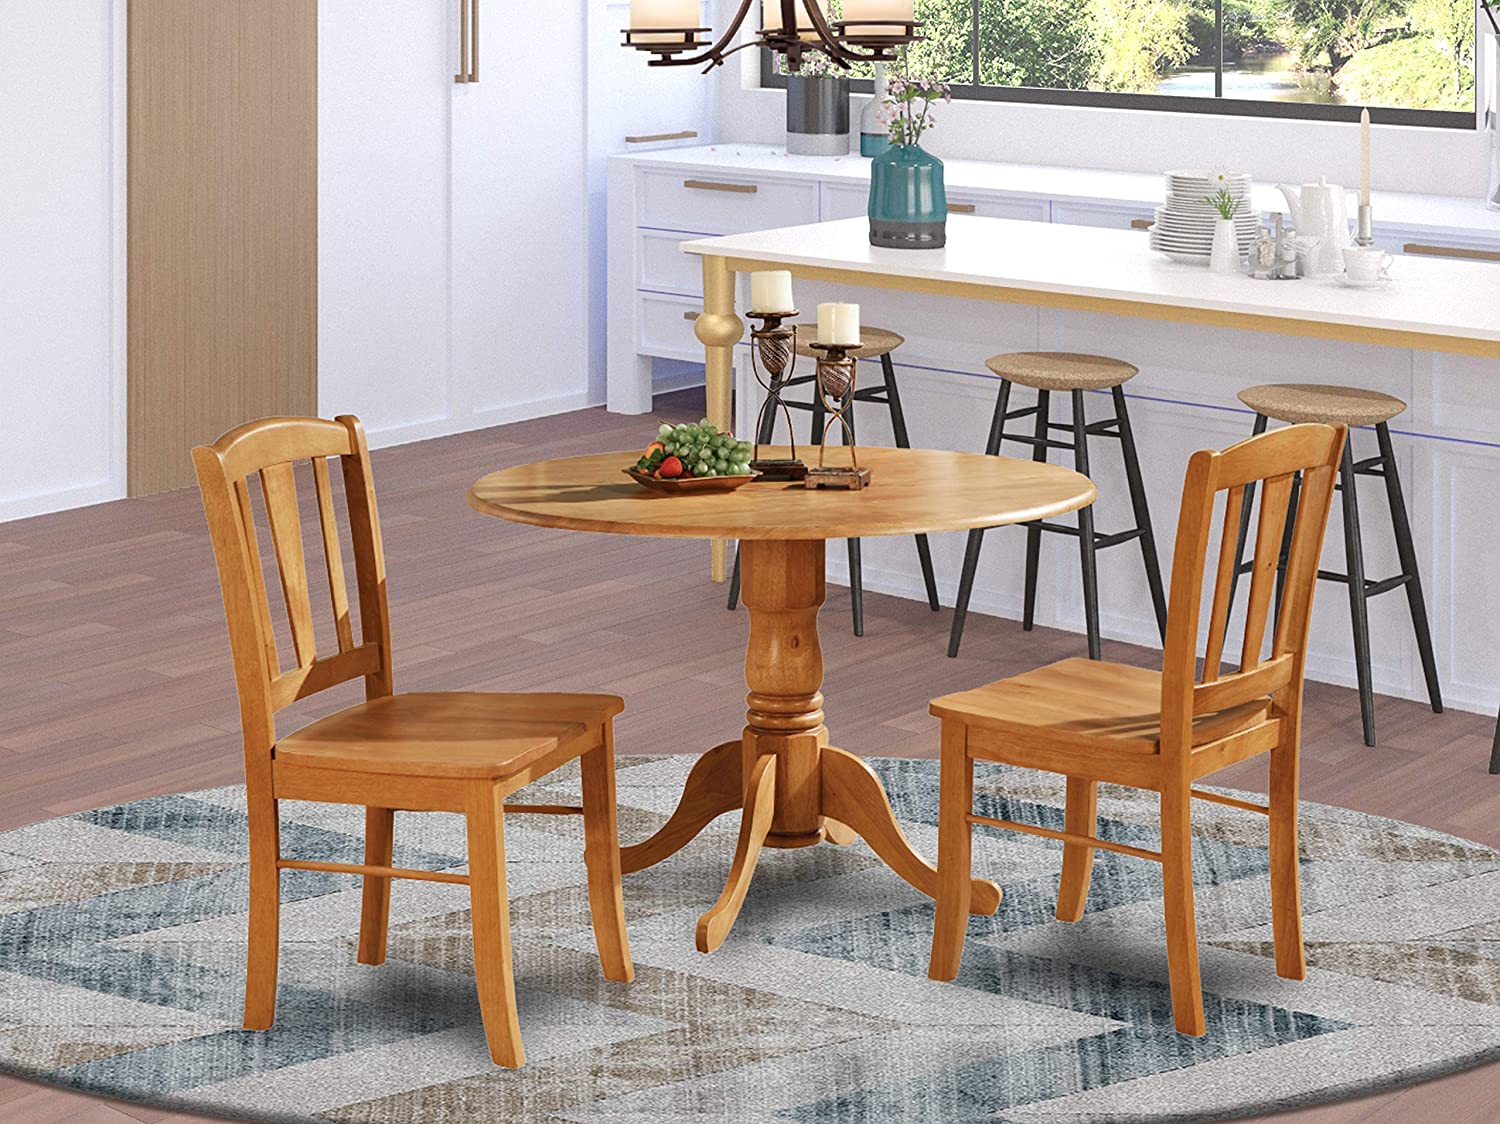 DLin112-OAK-W 112 Pc Kitchen Table set-Kitchen Dining nook and 12 dinette Chairs  Chairs